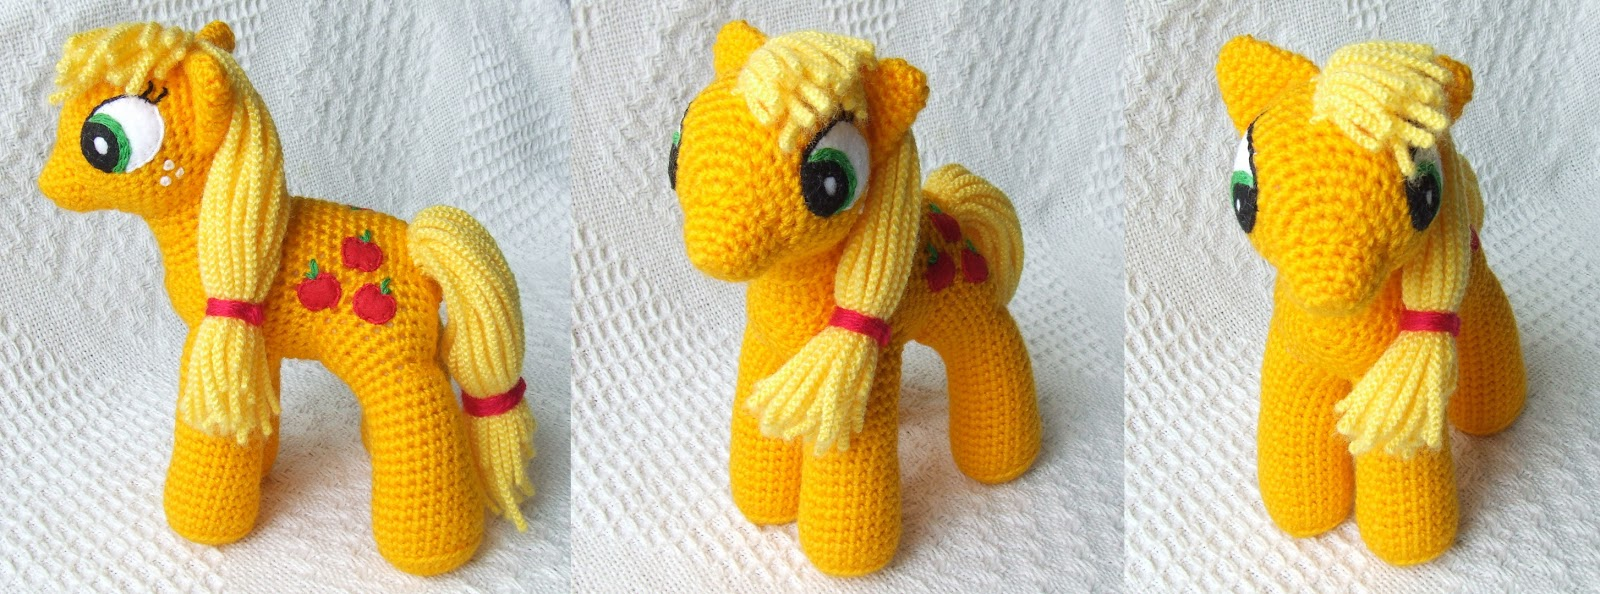 Amigurumi Pattern My Little Pony : Knit One Awe Some: My Little Pony: Friendship is Magic